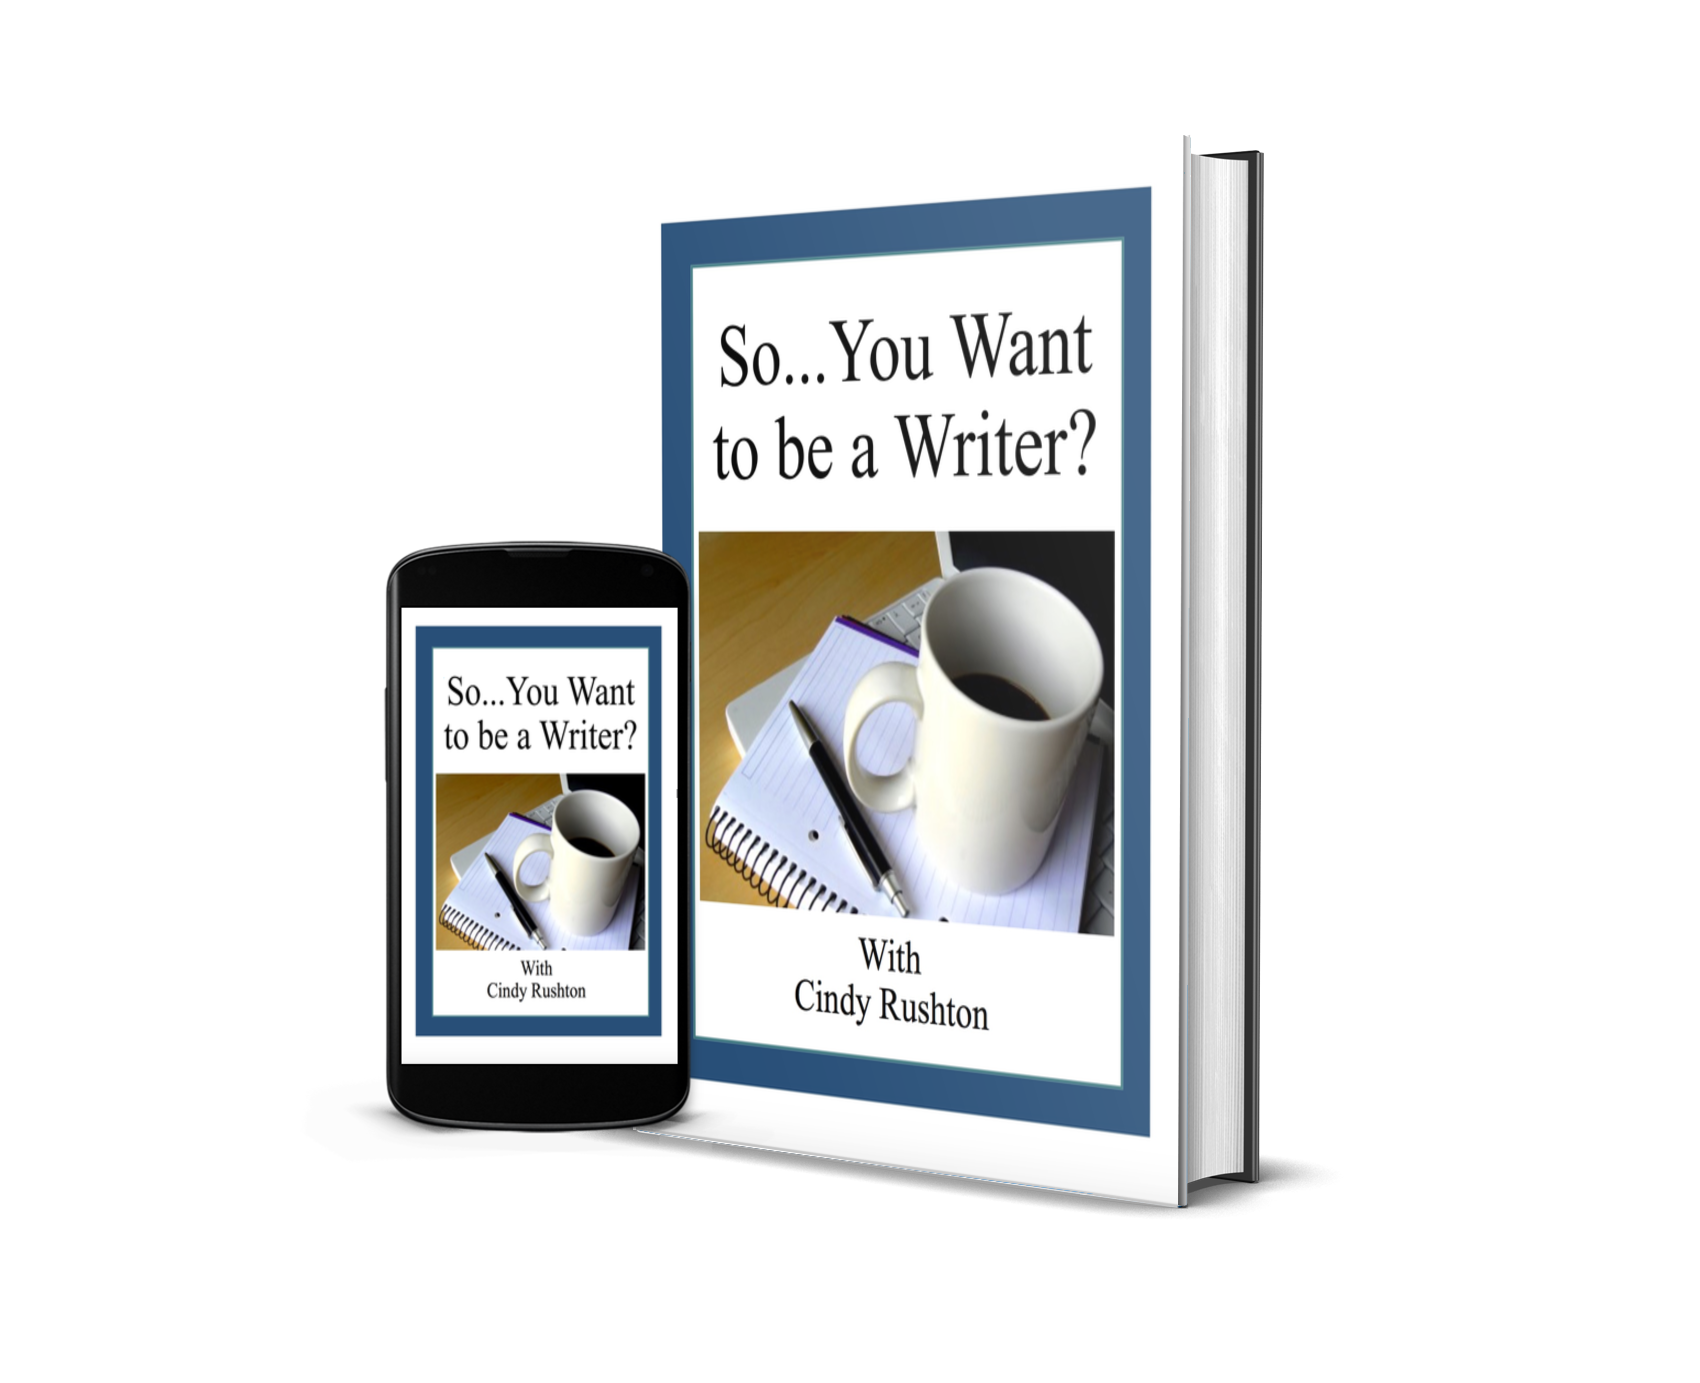 So...You Want to be a Writer???